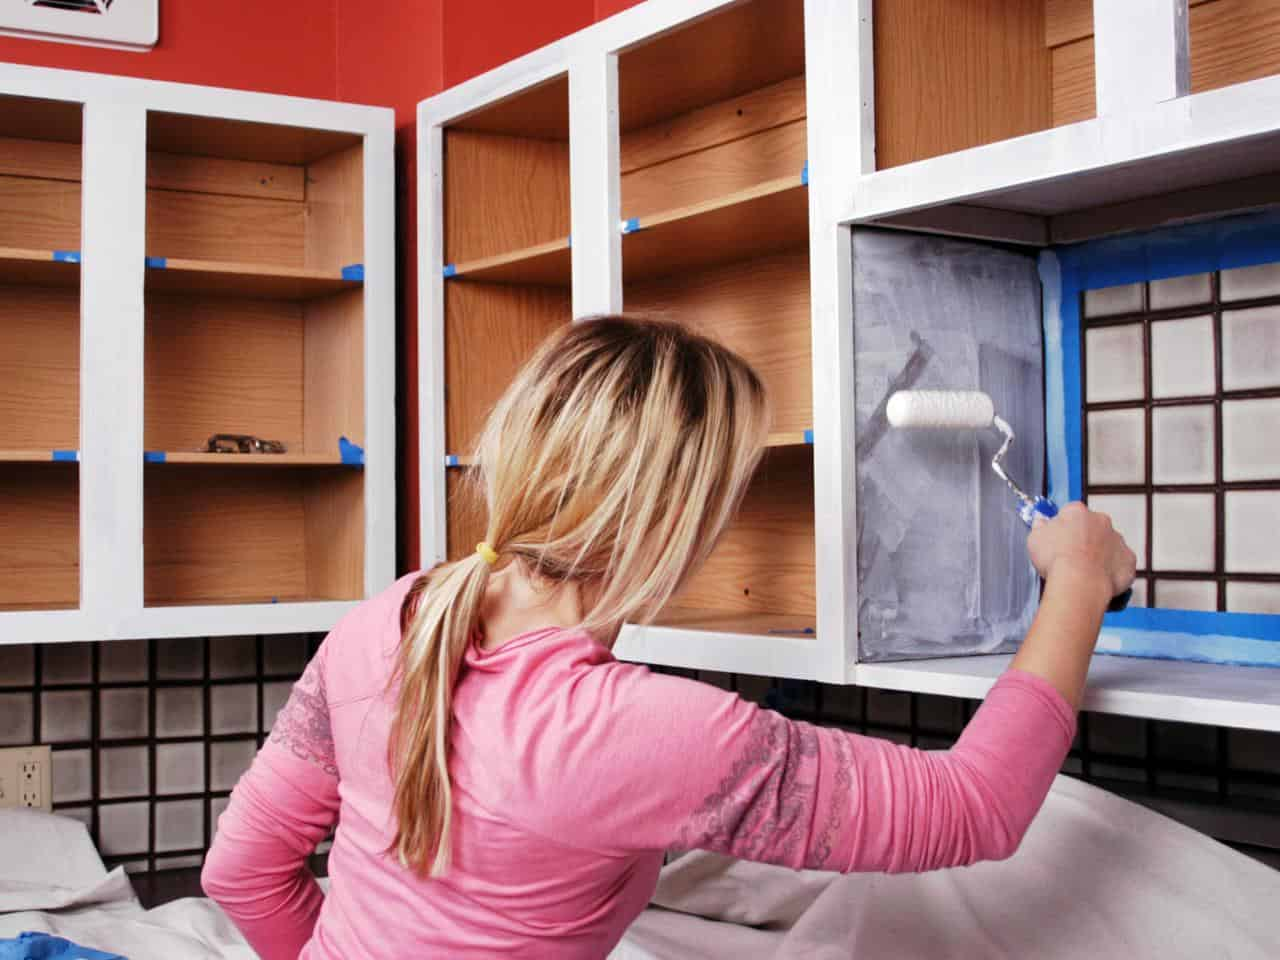 Careful how to's for painting the corners and angles of your kitchen cabinets